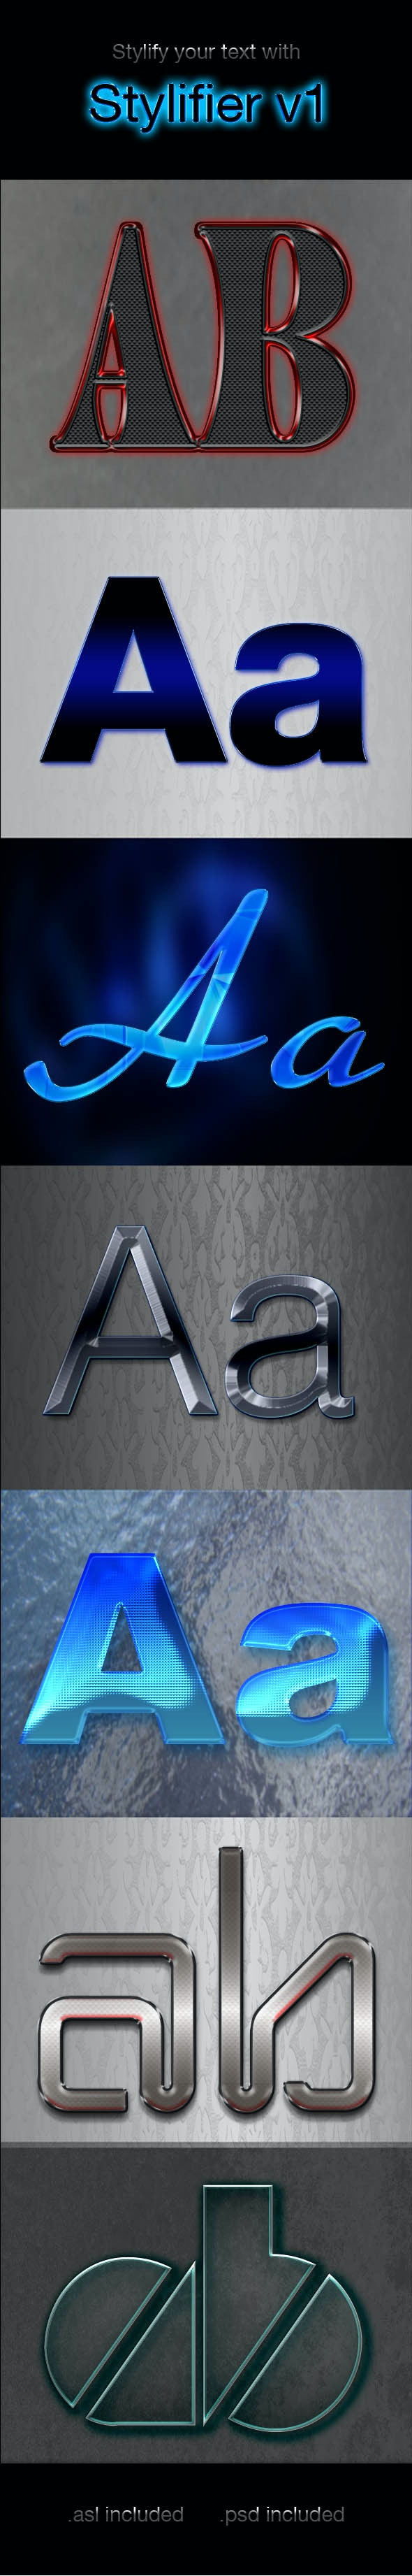 Stylifier v1 - Text Effects Styles